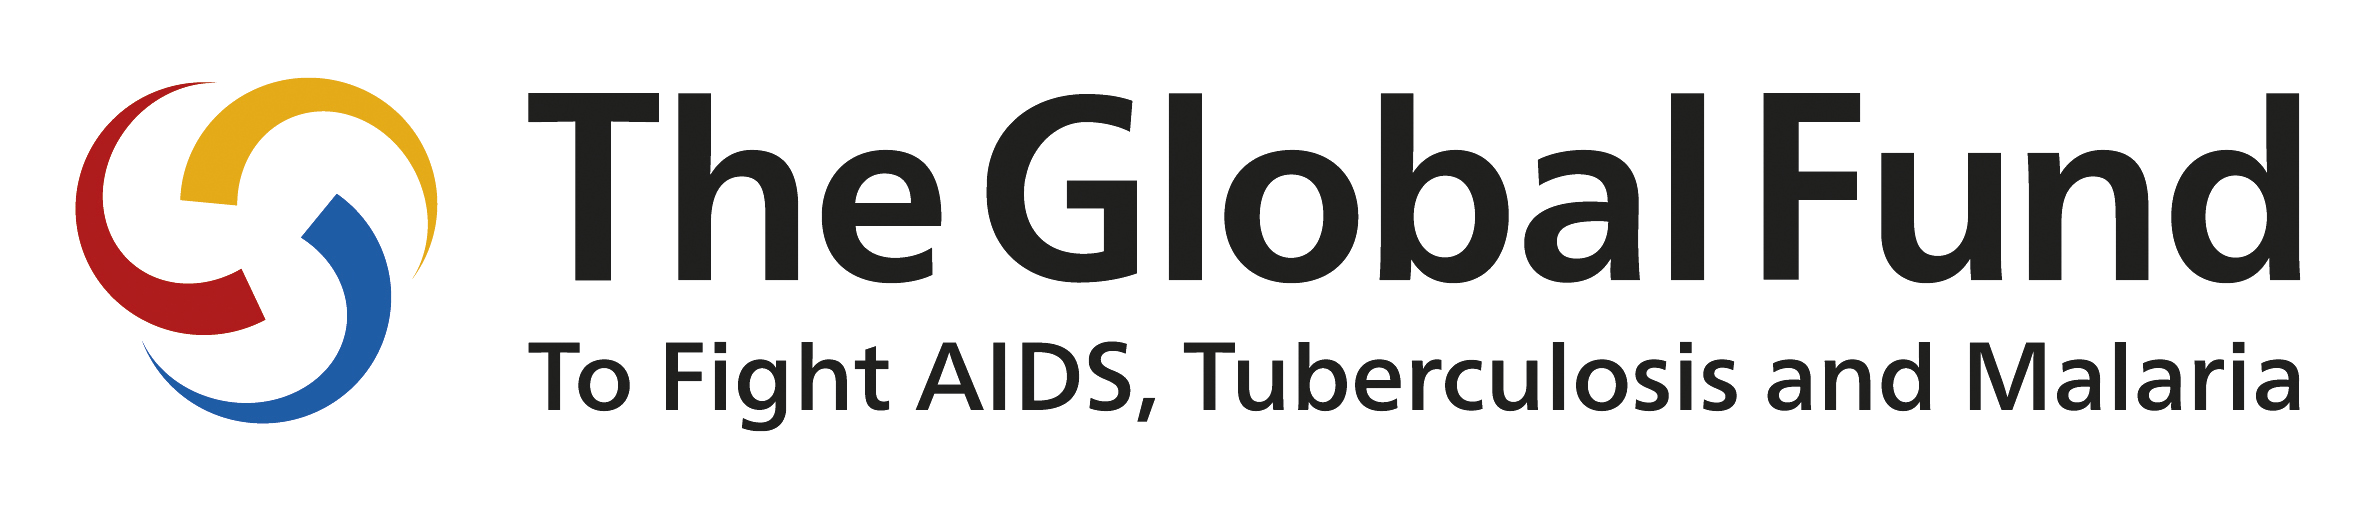 The_Global_Fund_to_Fight_AIDS_Tuberculosis_and_Malaria_logo.png